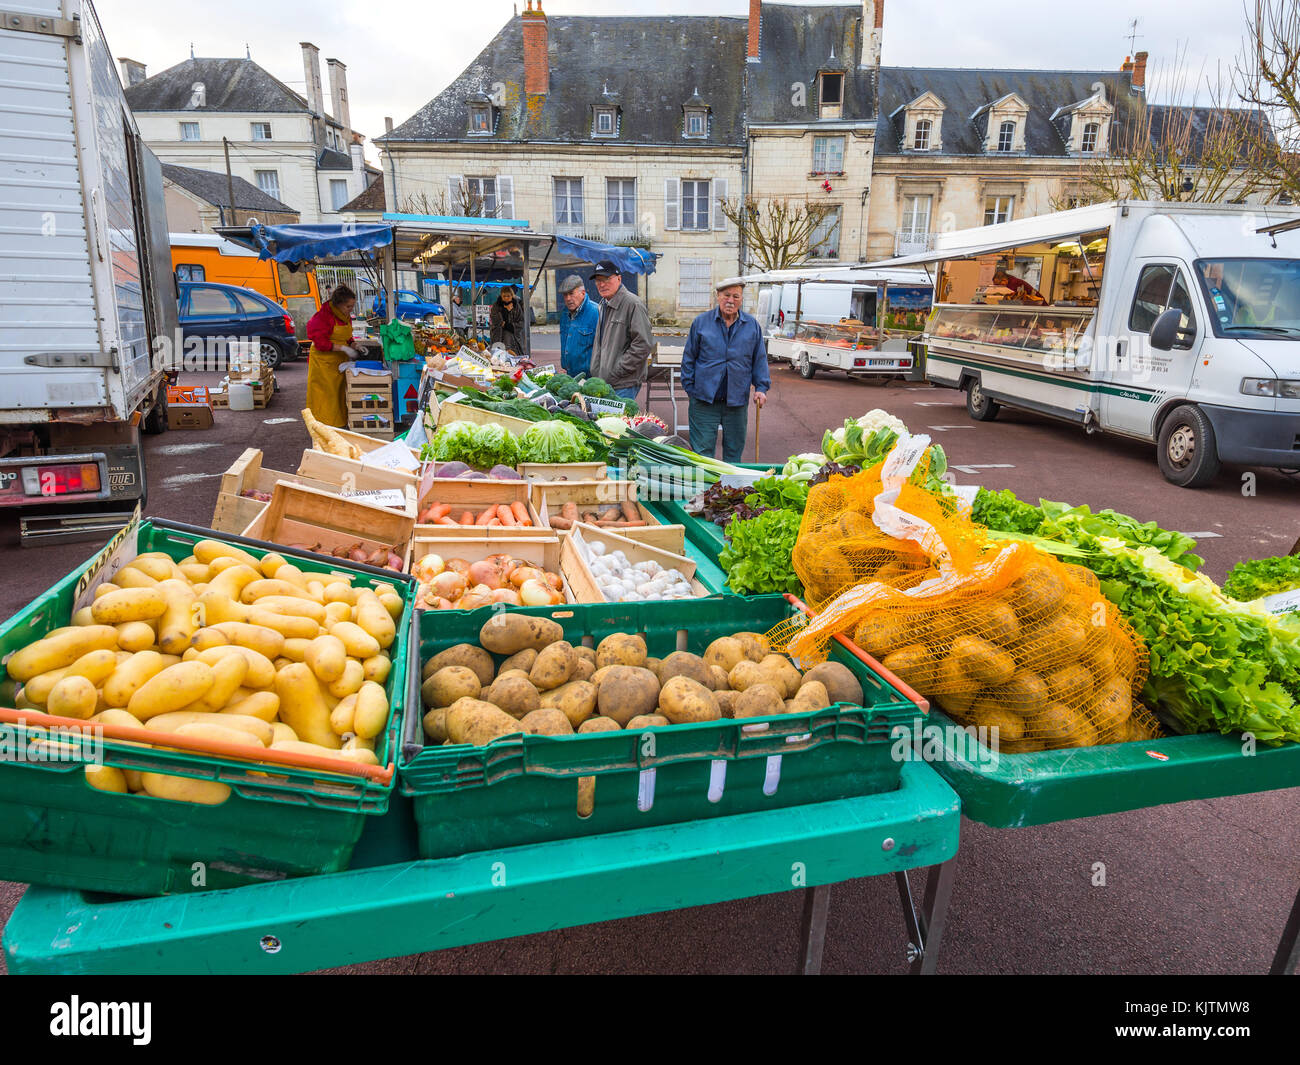 Open-air market stall with fresh vegetables - France. - Stock Image